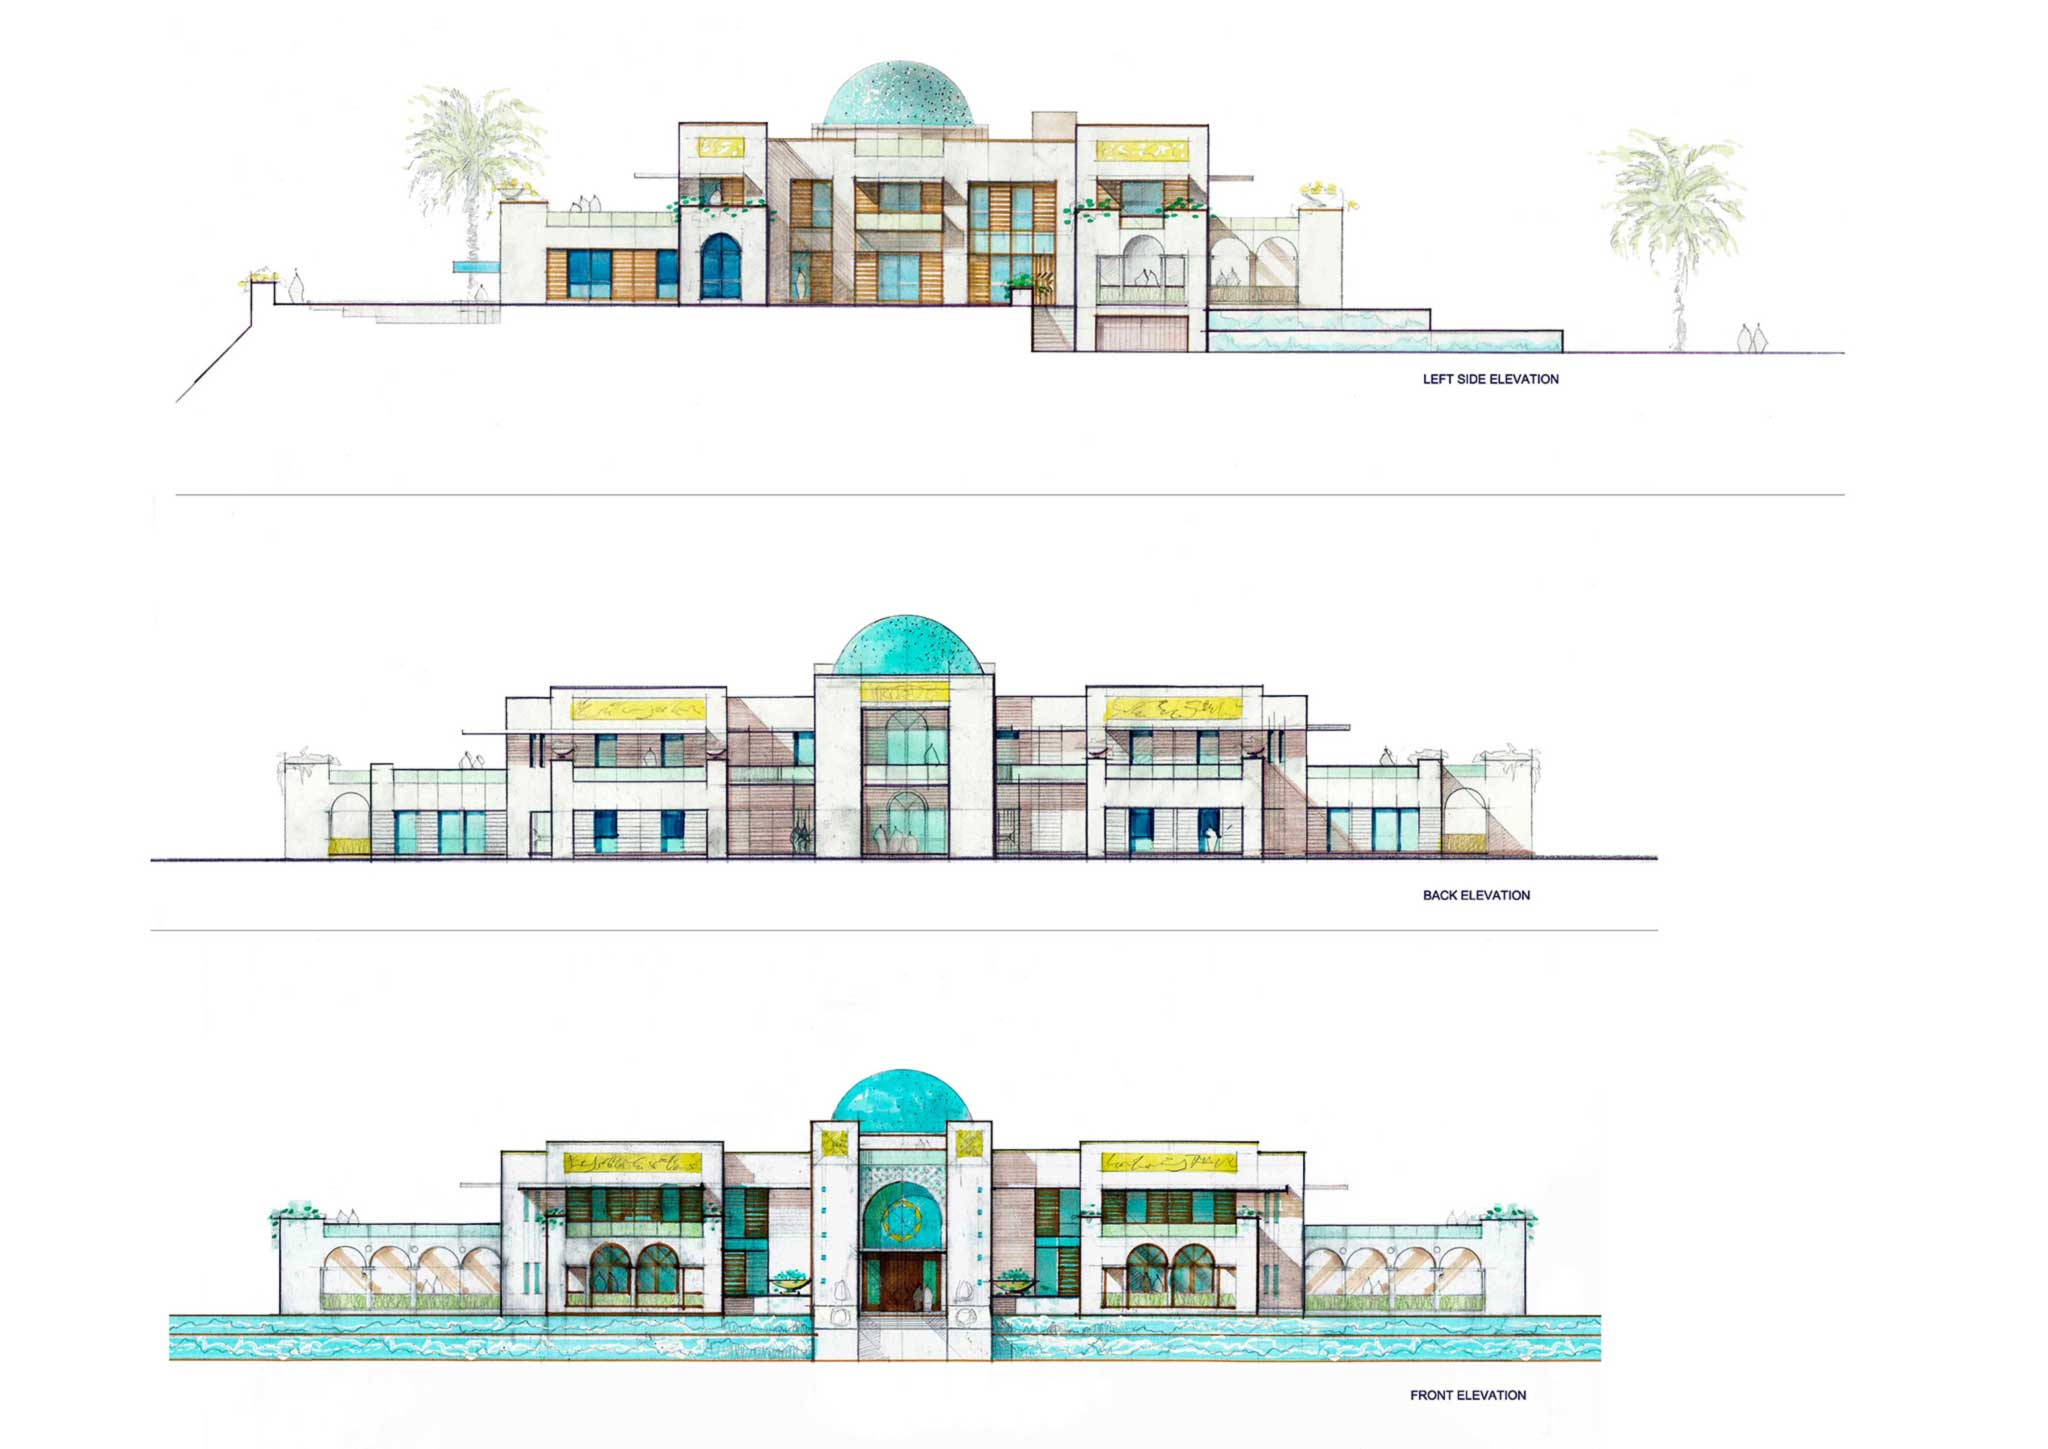 06-PALACE-ELEVATIONS-A